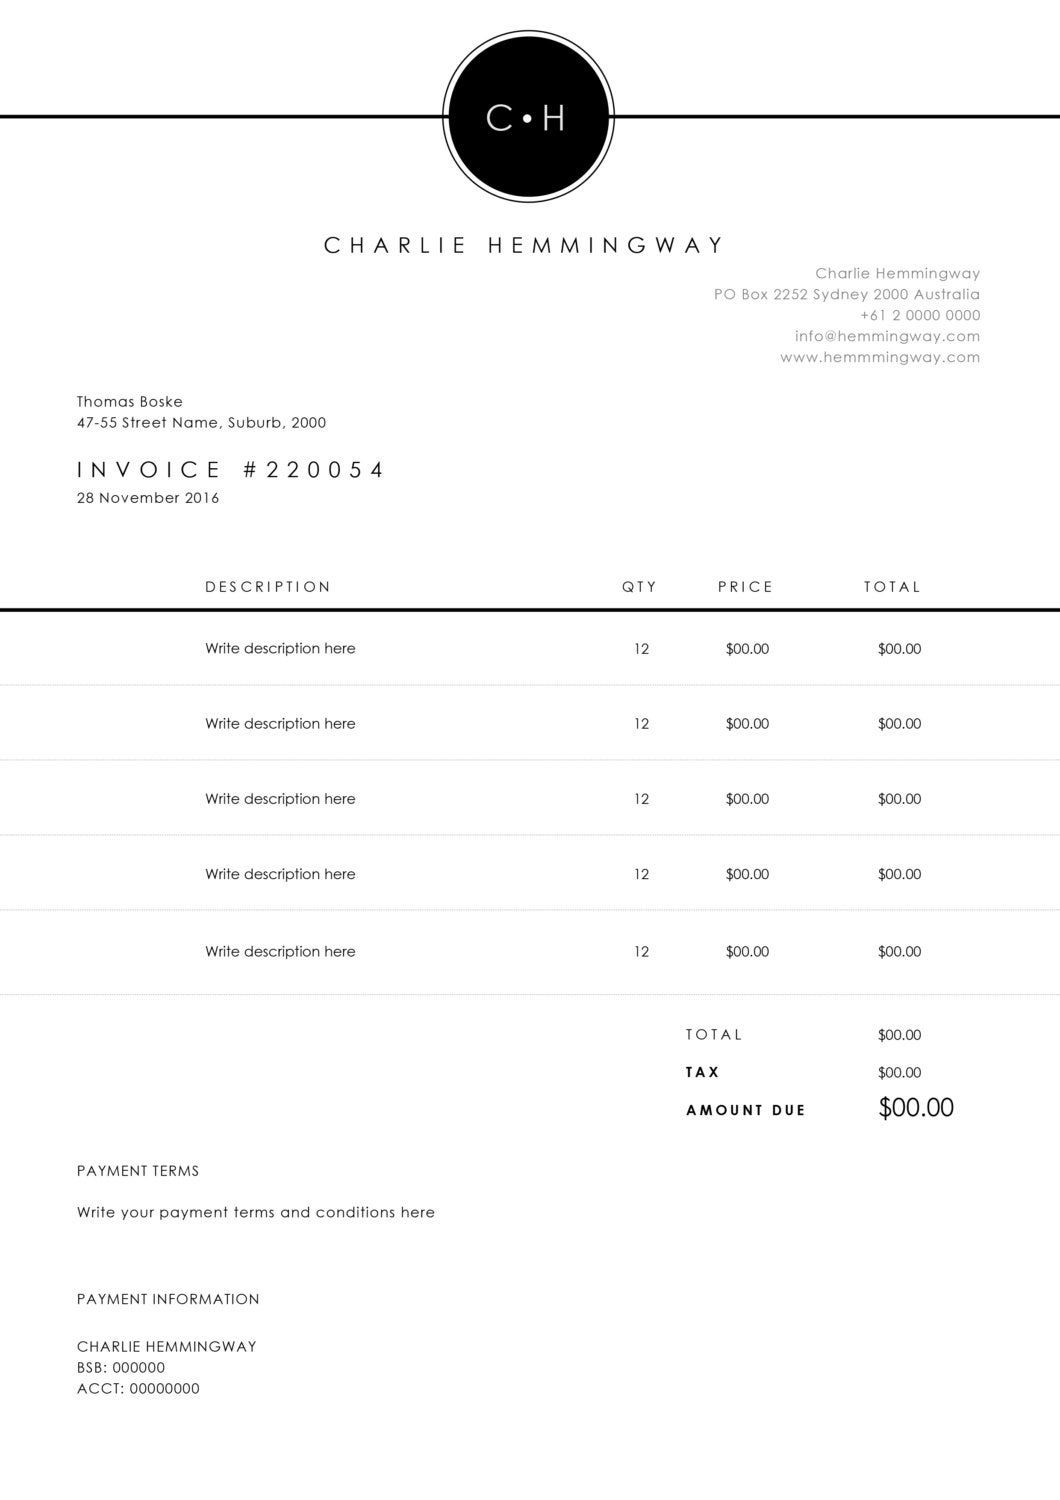 Invoice Template Invoice Design Receipt Ms Word Invoice Template Photoshop Invoice Template Printable Invoice Invoice Design Invoice Template Invoice Layout